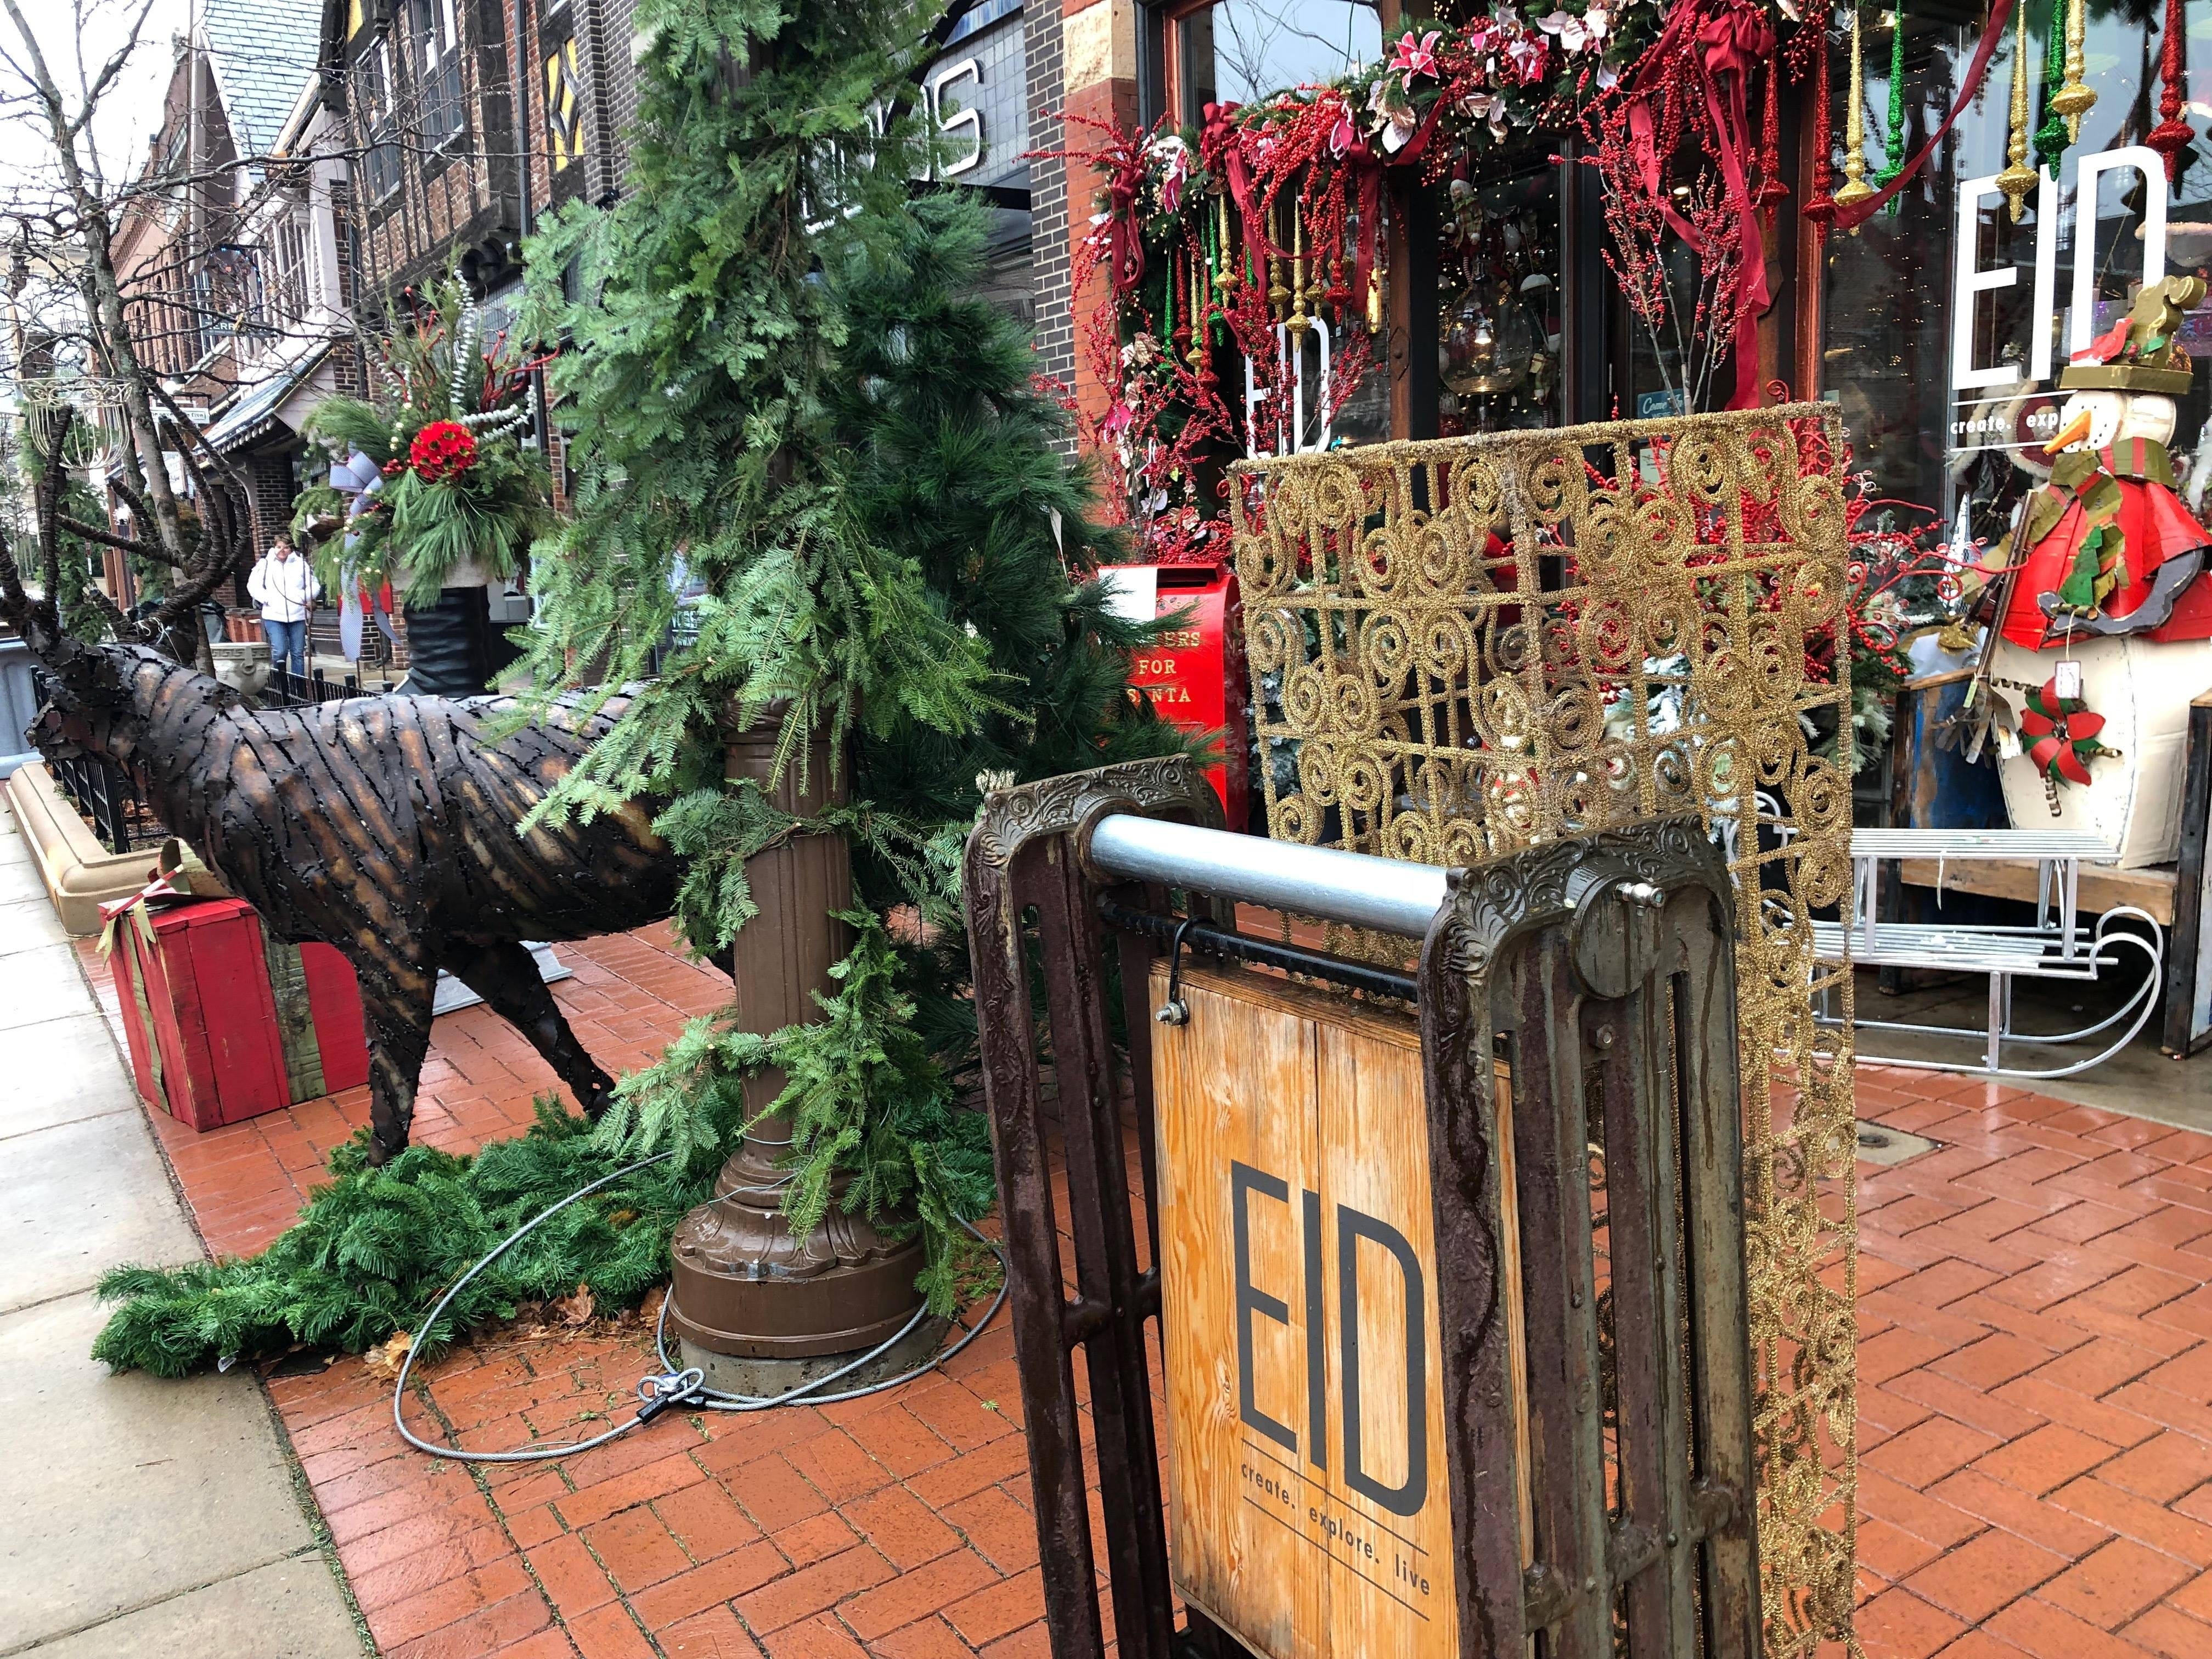 Decorations at Evolutions in Design light up downtown Wausau on Small Business Saturday.